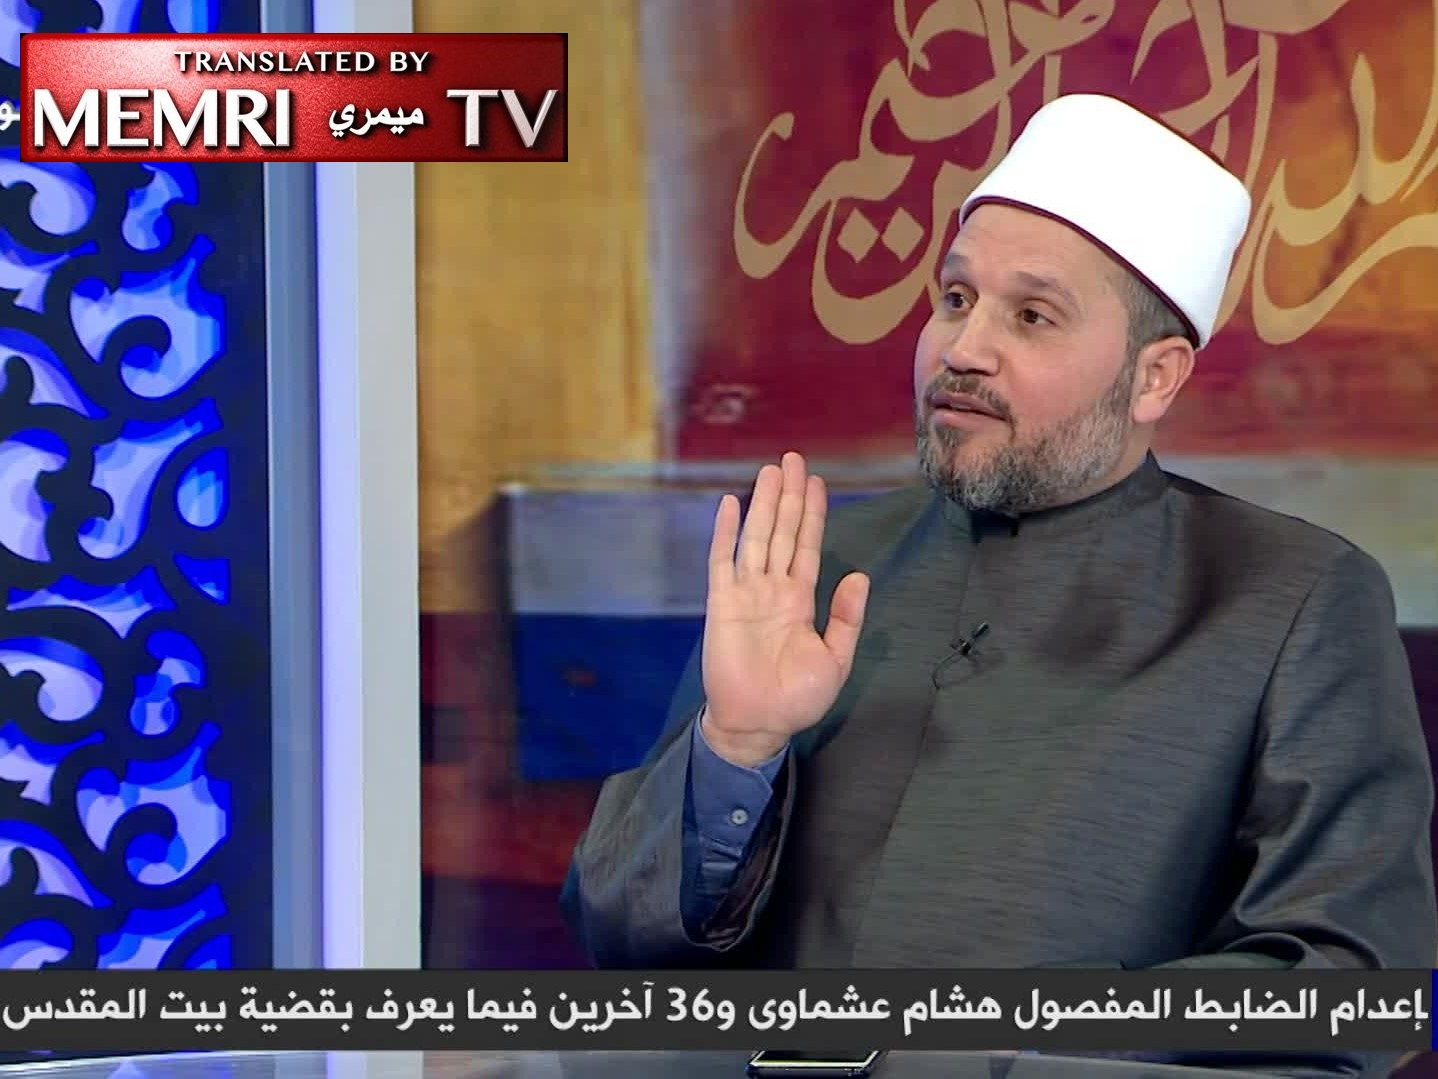 Egyptian Islamic Scholar Salama Abd Al-Qawi Defends FGM on Muslim Brotherhood TV: Drinking Water and Eating Eggplants Can Also Lead to Death